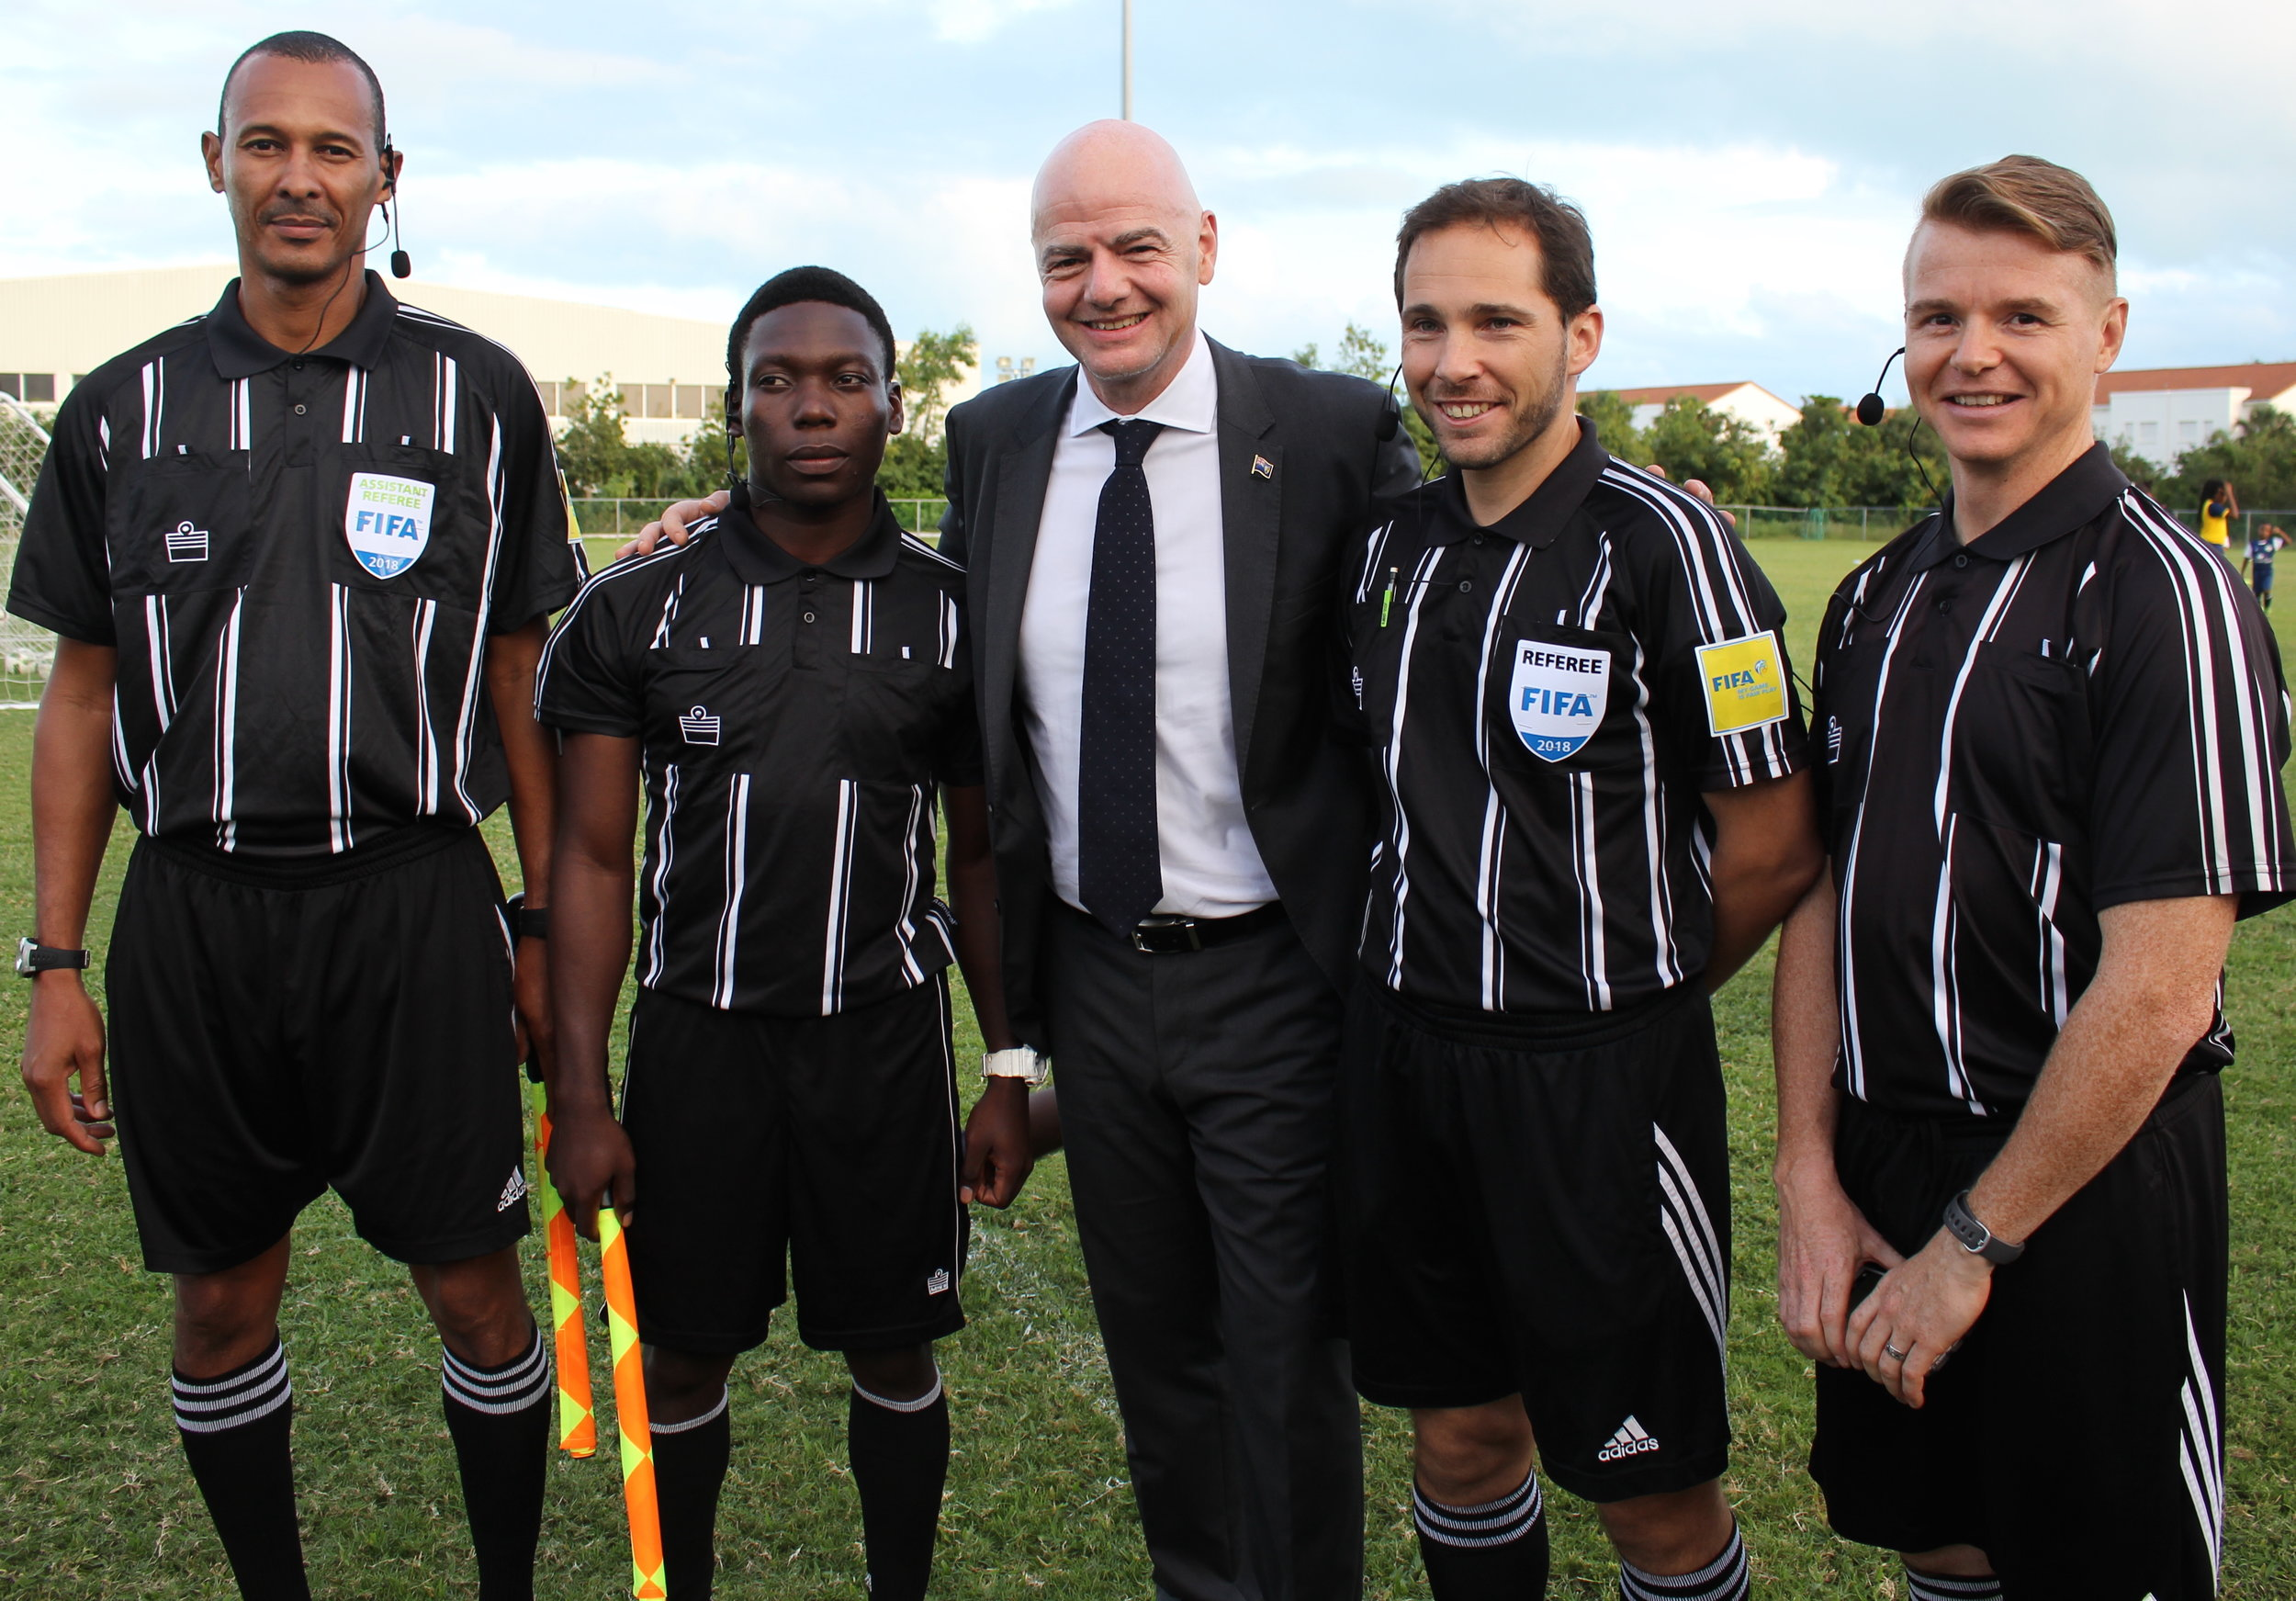 (L-R) FIFA Asst Referee Dane Ritchie, Jackson Pierre, FIFA President Gianni Infantino, FIFA Referee Gianni Ascani, and Dan Willis